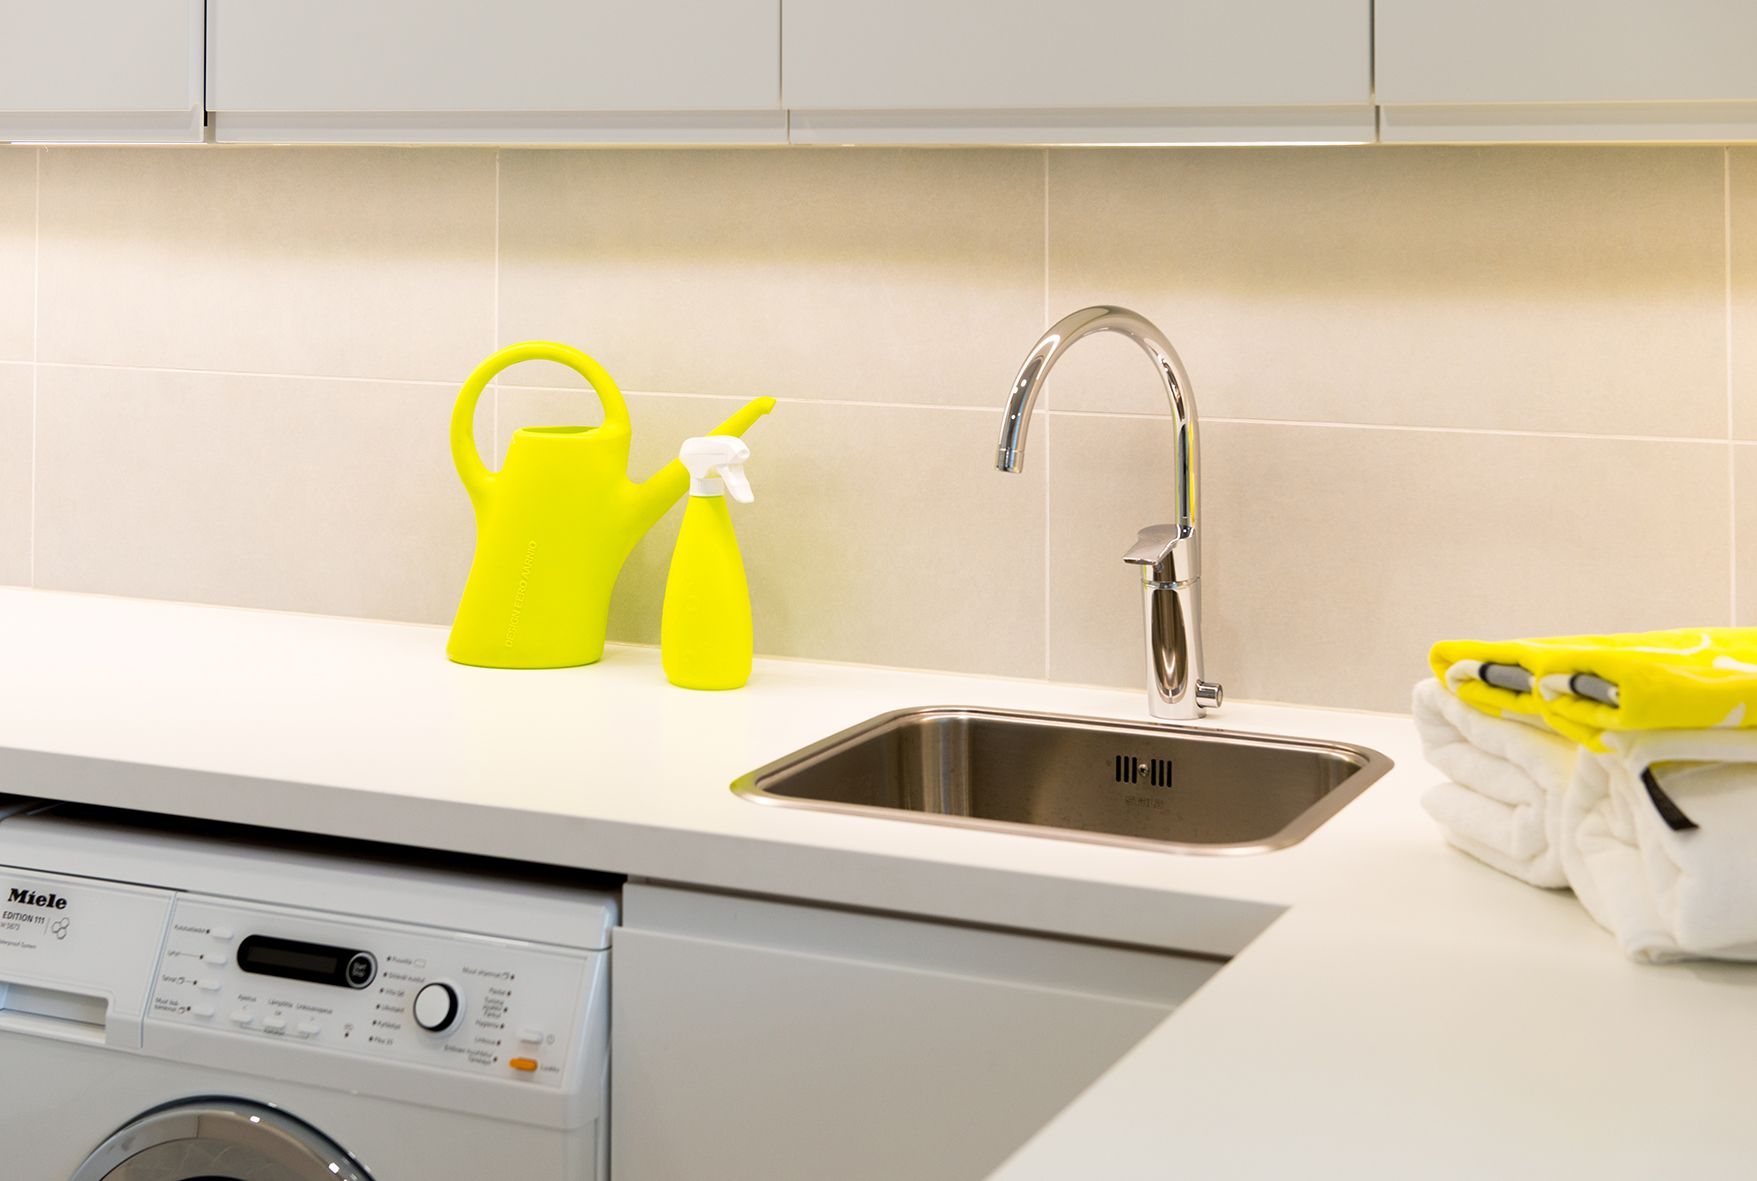 Home | Kitchen faucets, Dishwashers and Tap